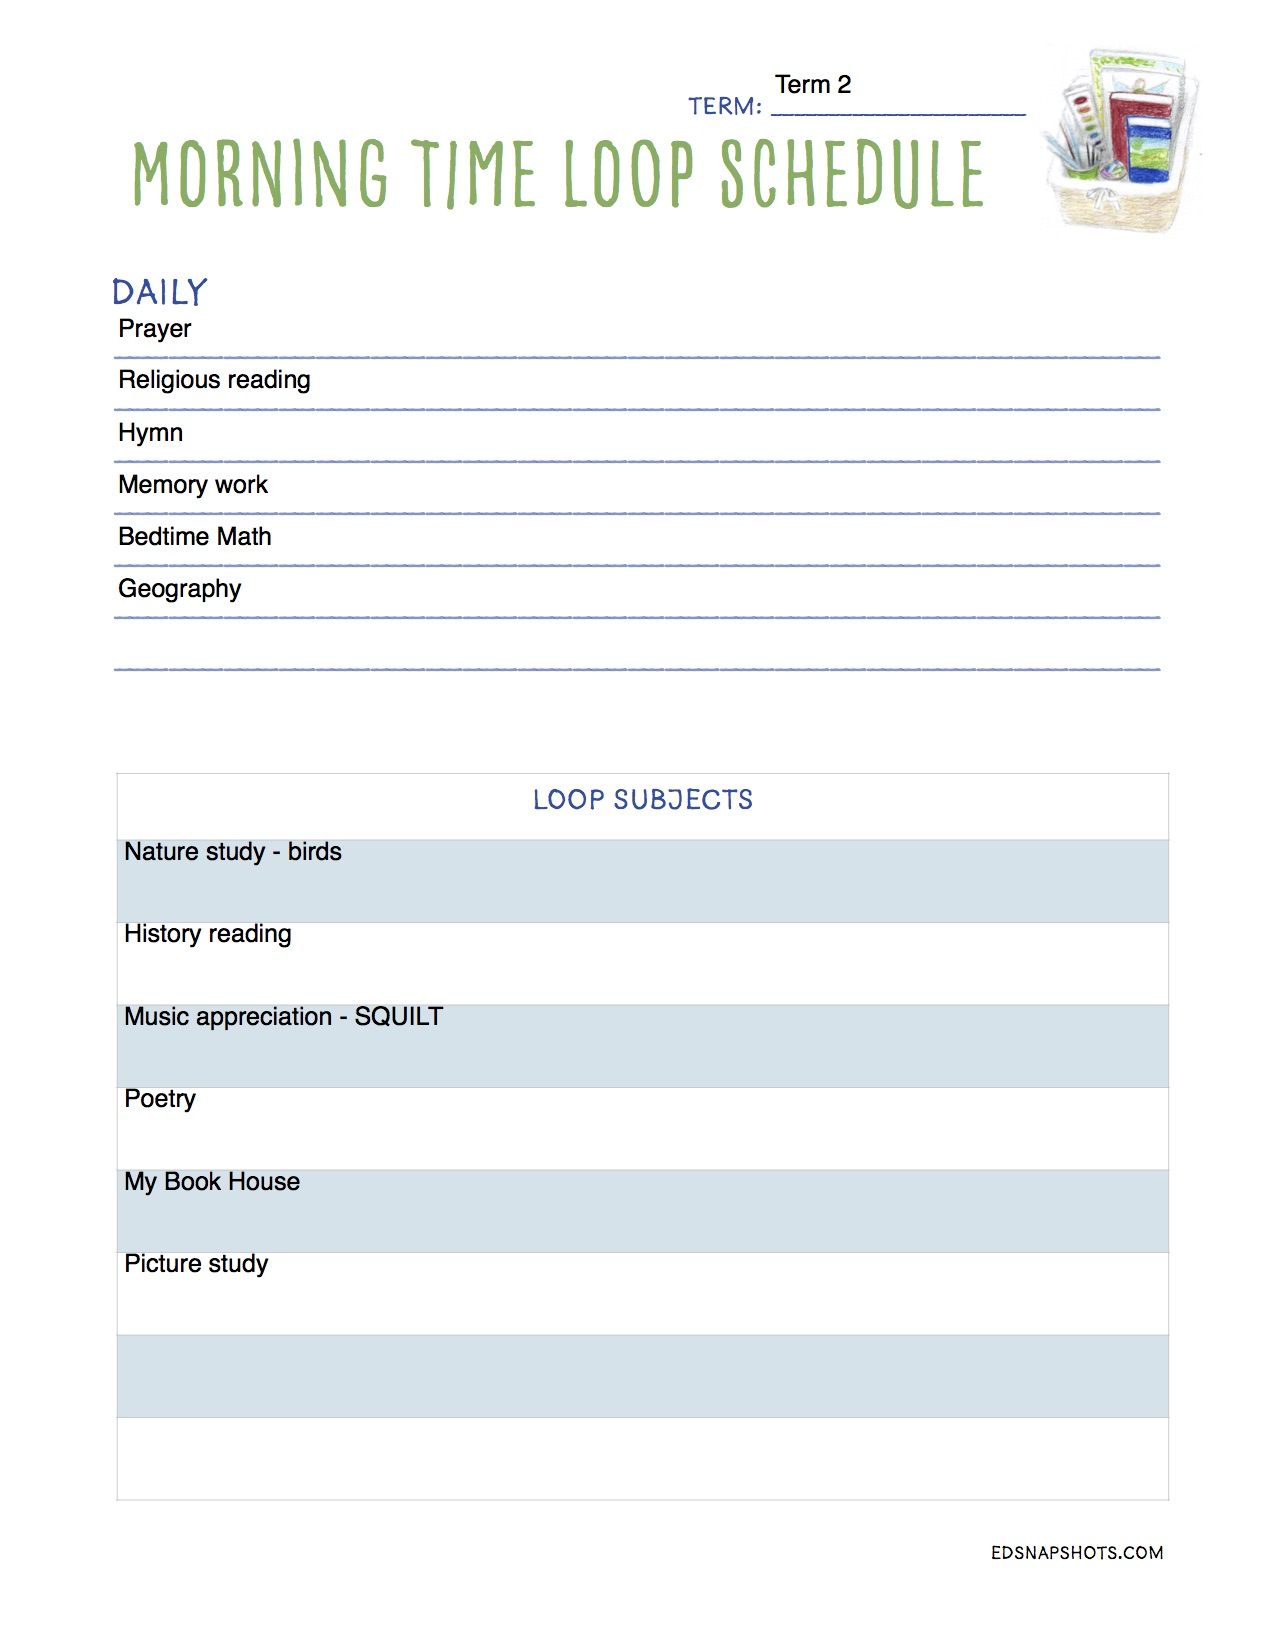 Loop Scheduling for Morning Time Sample Loop Pam Barnhill Homeschool Solutions